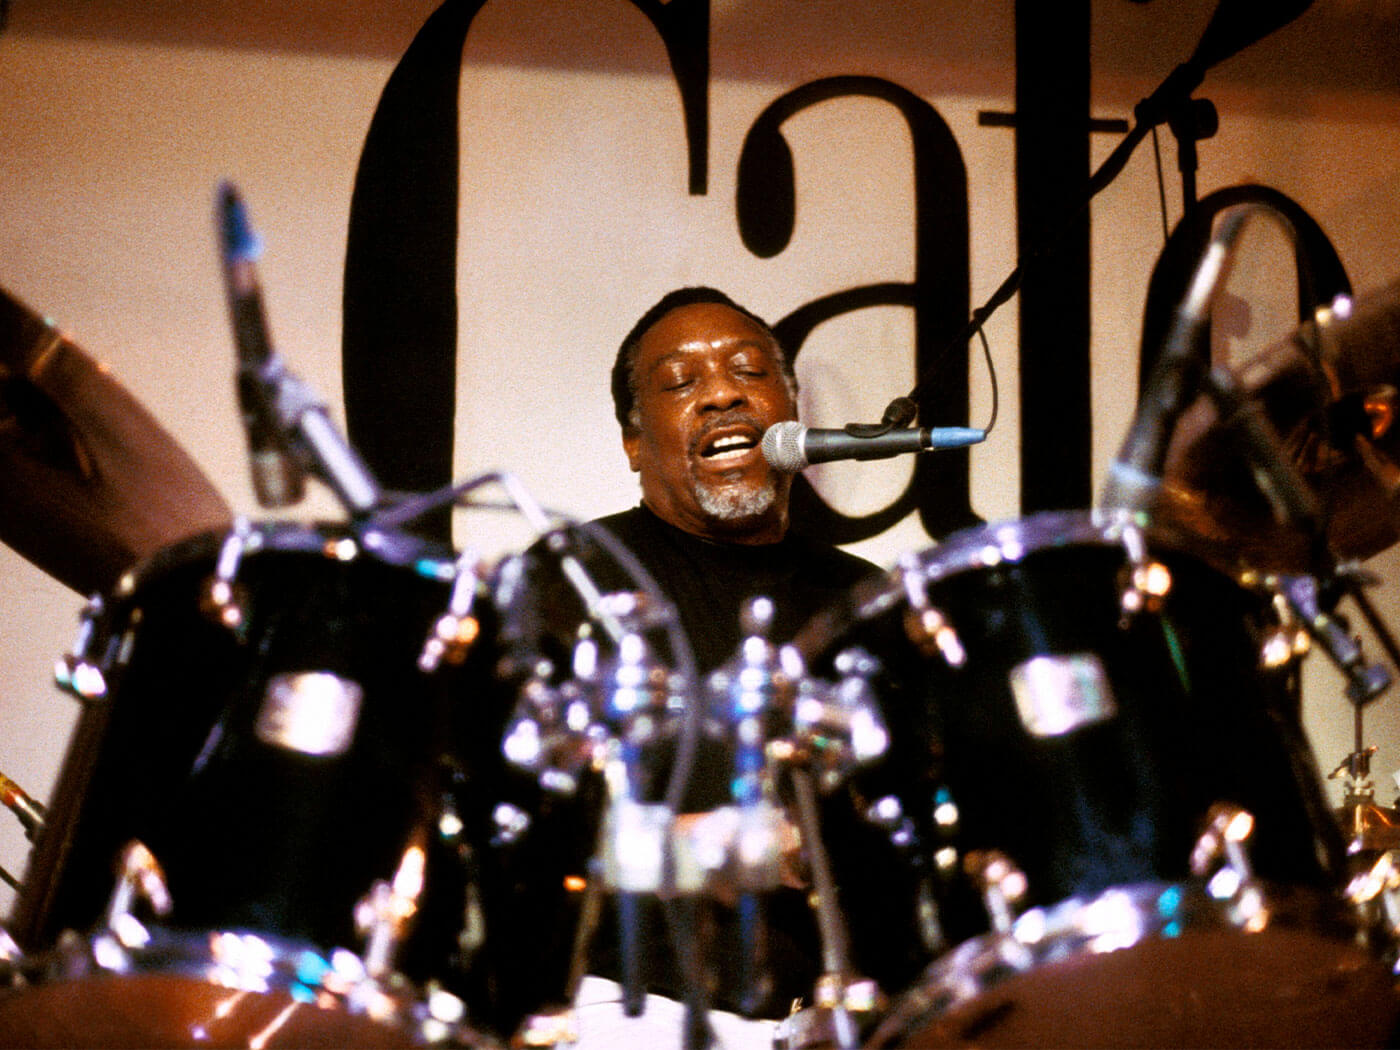 Put James Brown beats in your track with Clyde Stubblefield's Funky Drummer | MusicTech